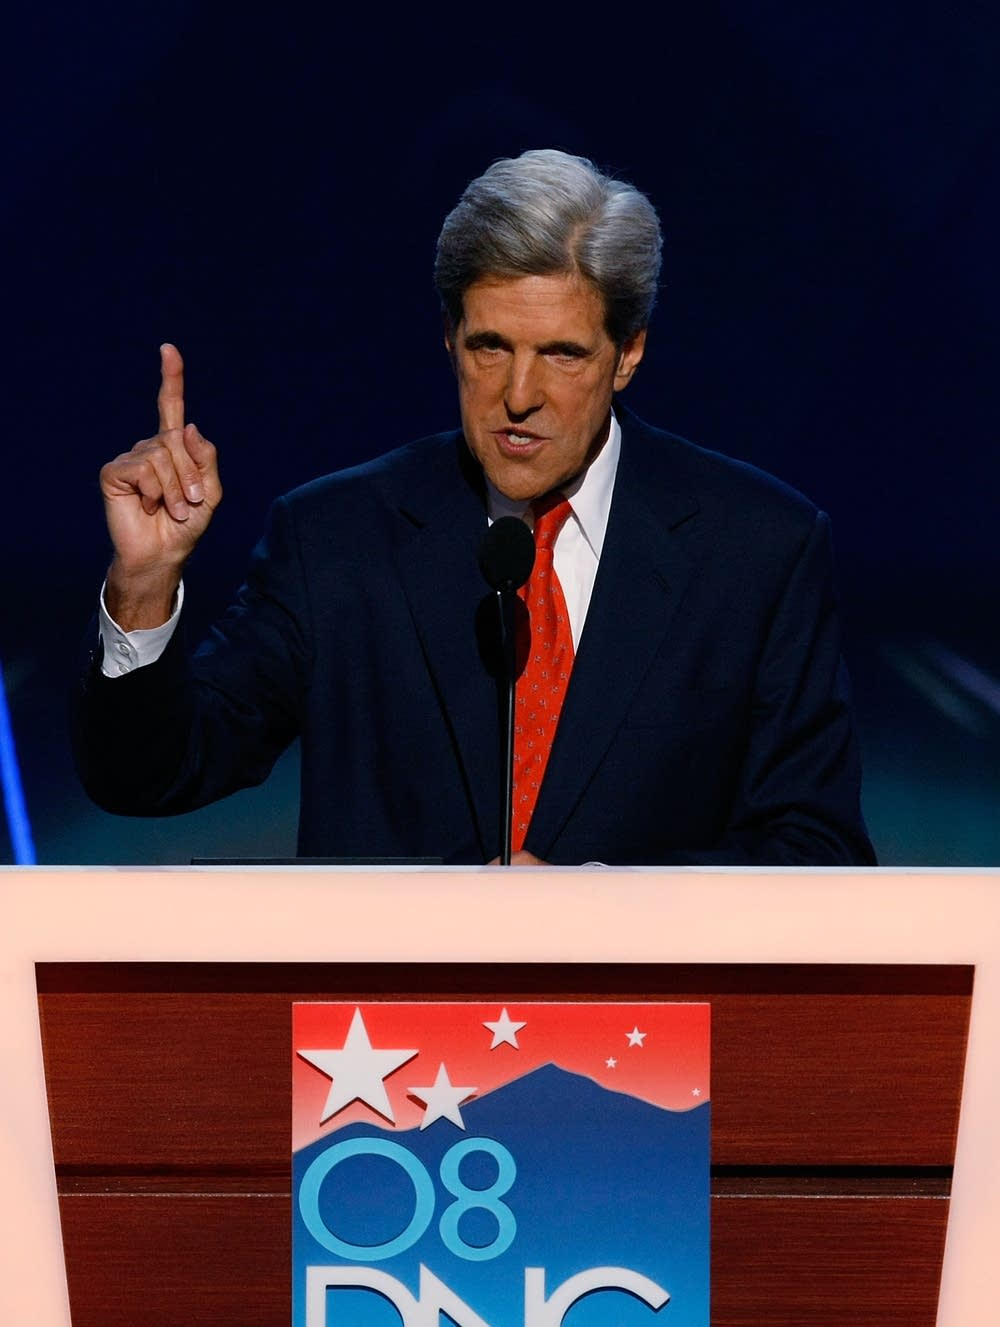 Sen. John Kerry at the DNC in Denver